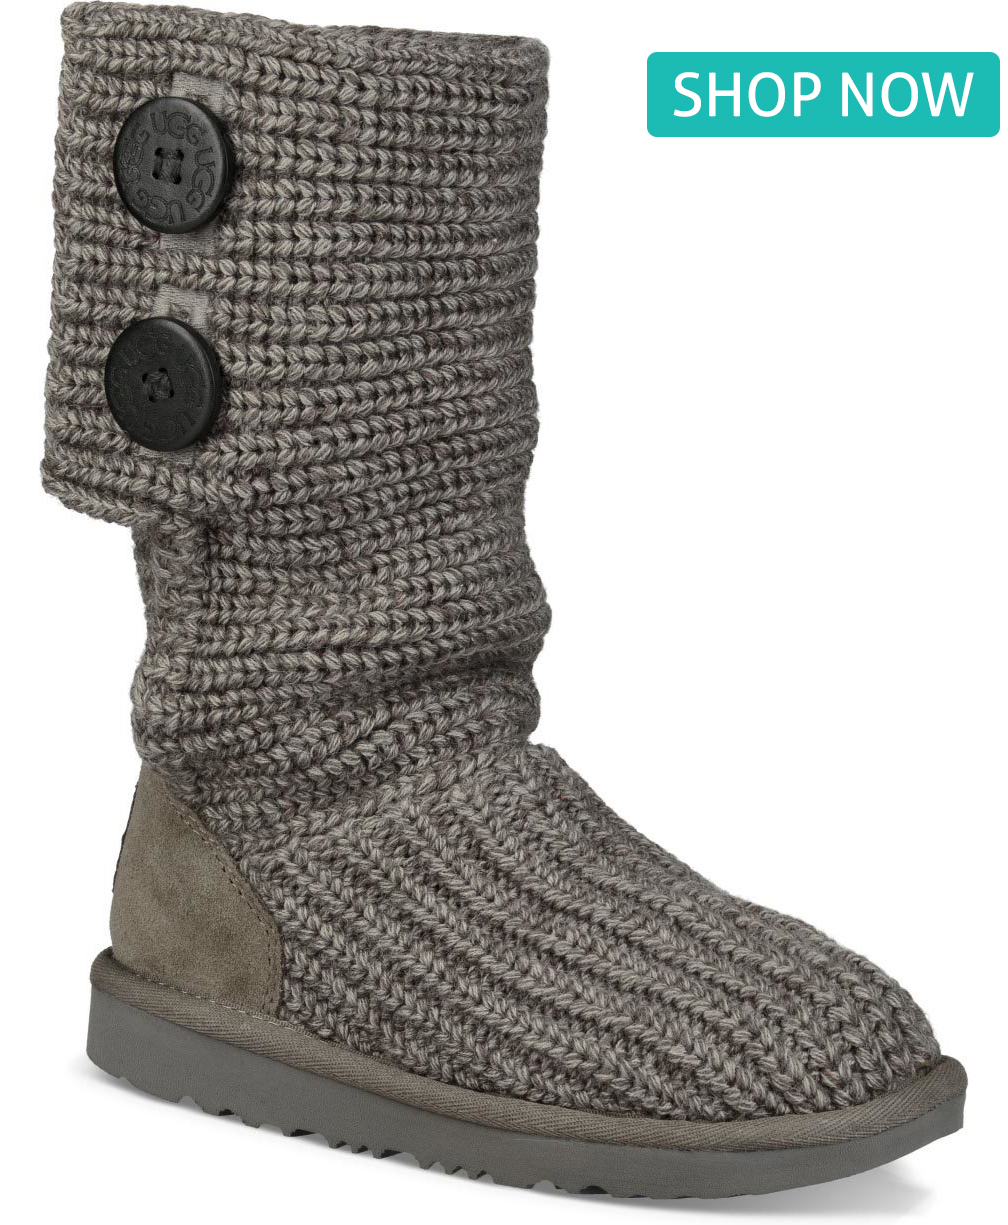 65c4c14f4d0 What's the Difference Between the UGG Children's Classic and the New ...